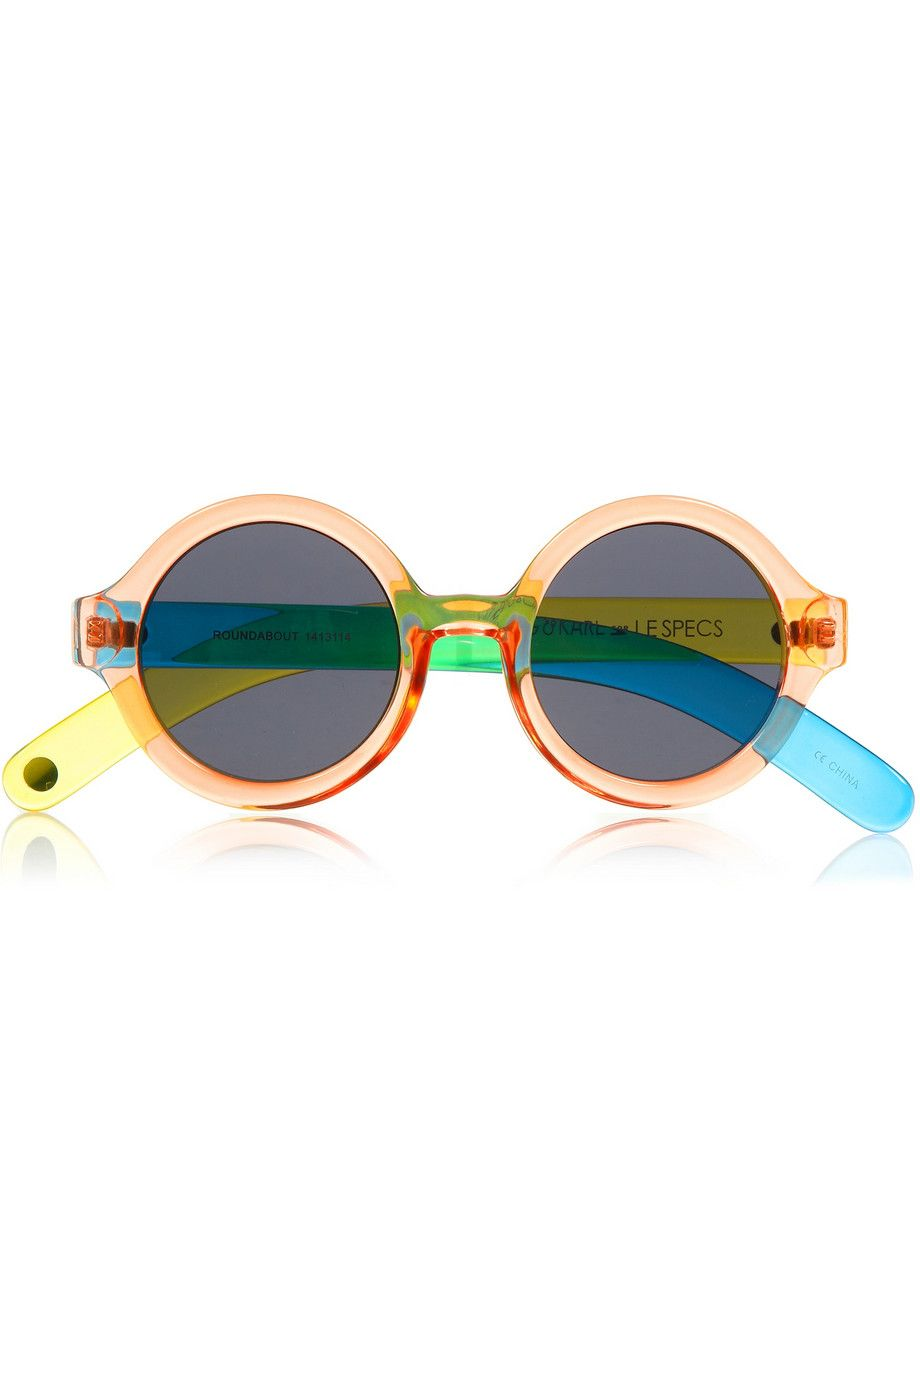 Le Specs - + CRAIG & KARL Roundabout round-frame acetate sunglasses